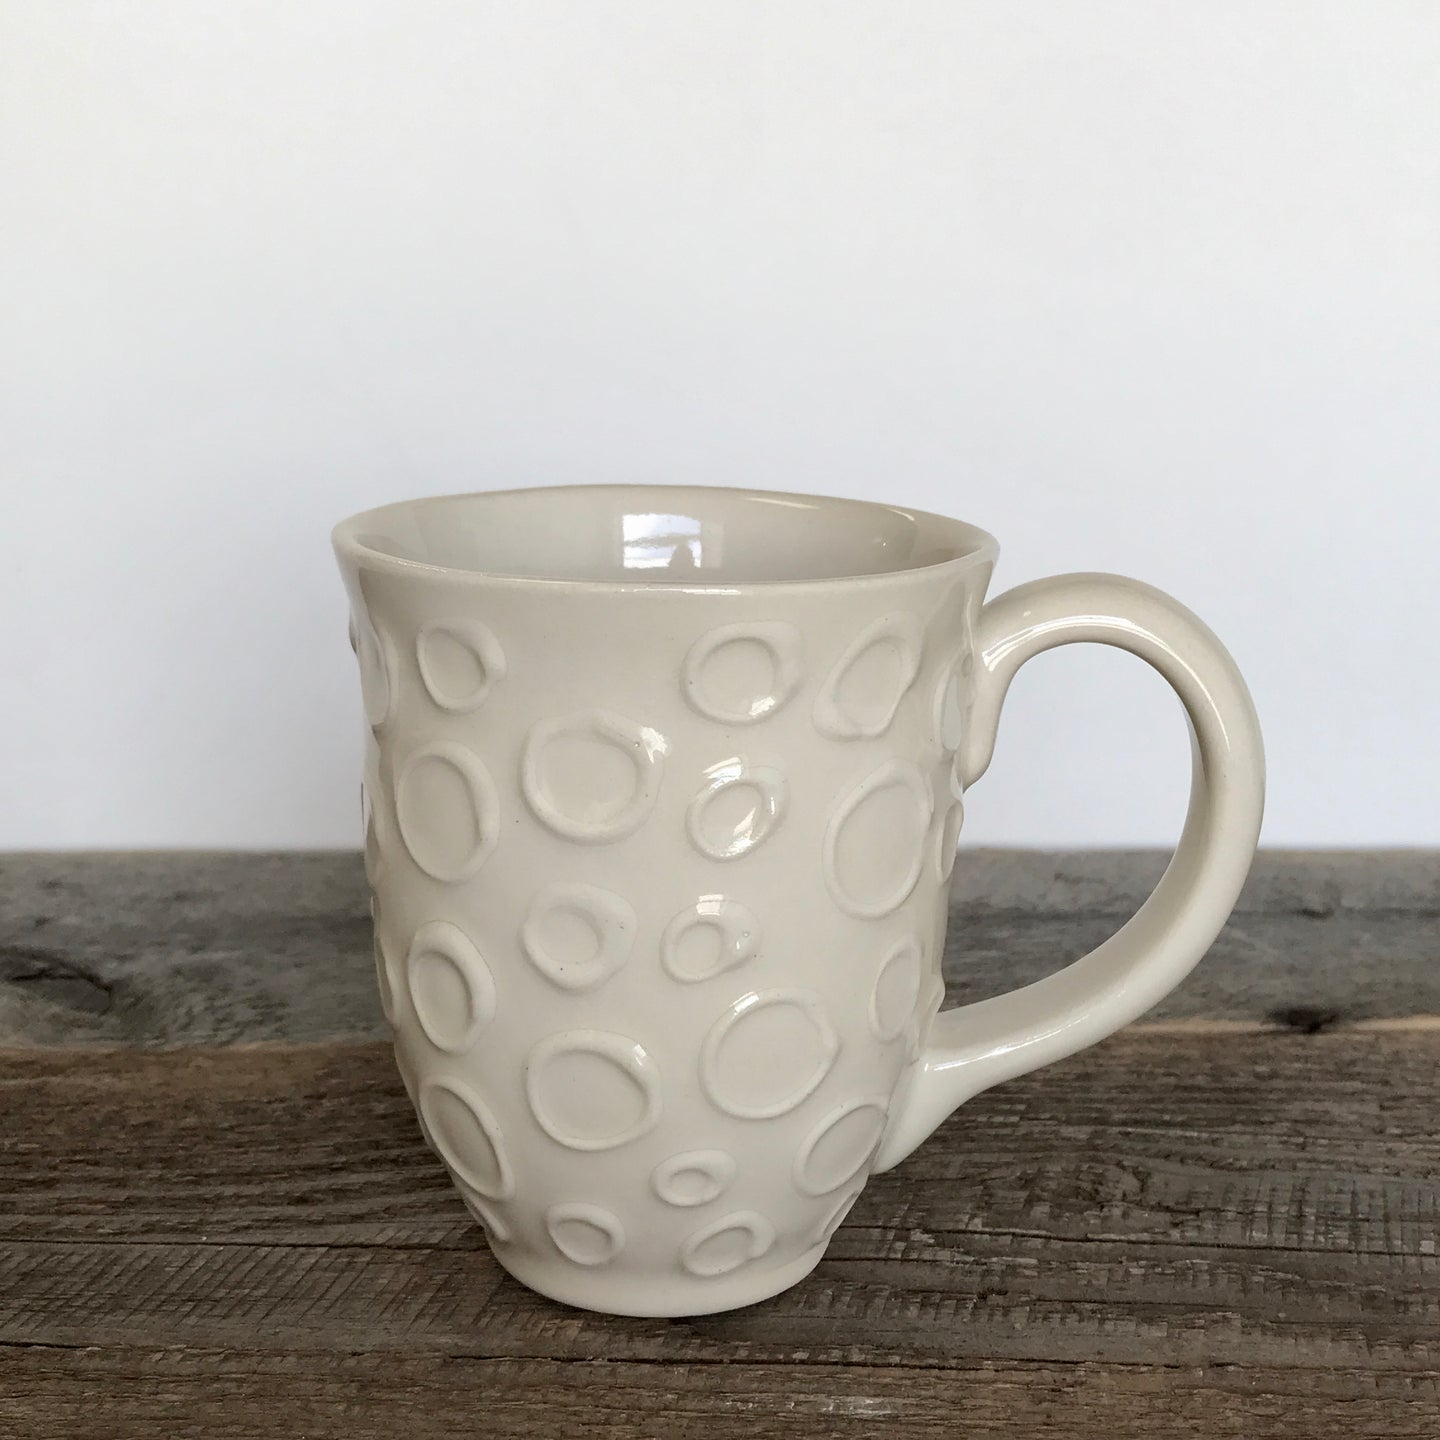 IVORY MUG 15 OUNCES WITH CIRCLES